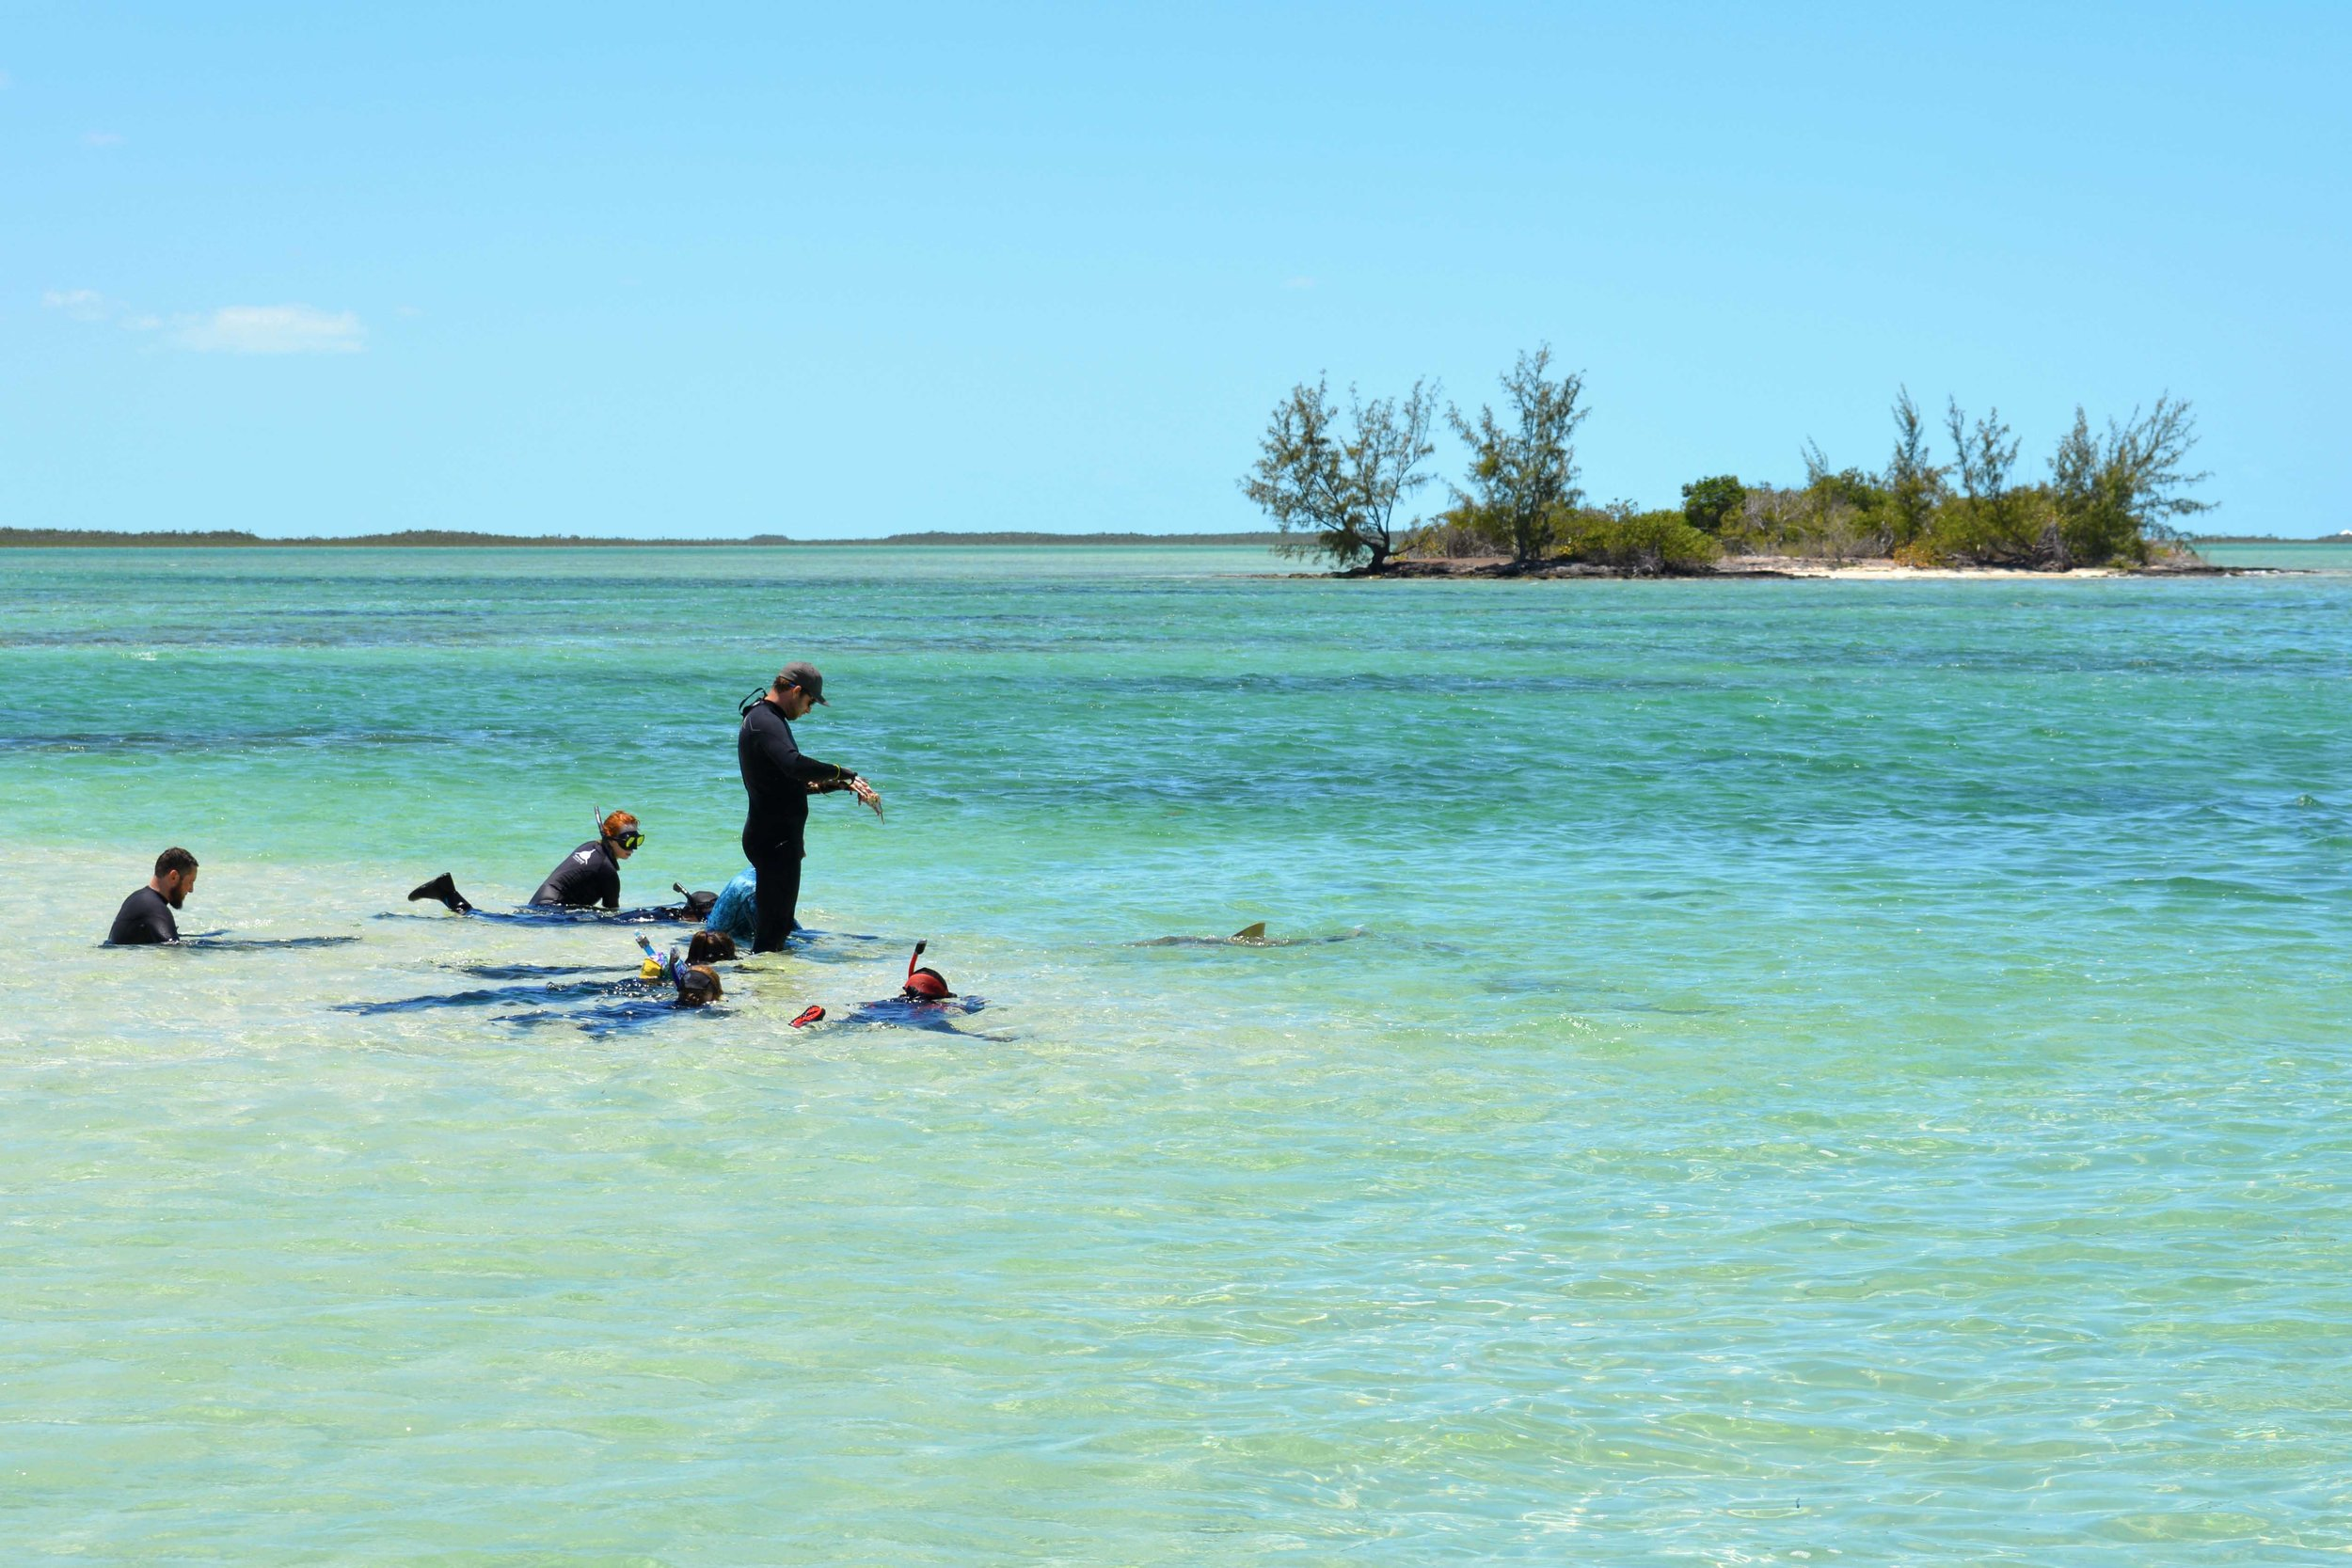 Guests relax and enjoy the view with over 12 lemon sharks just a few feet away!